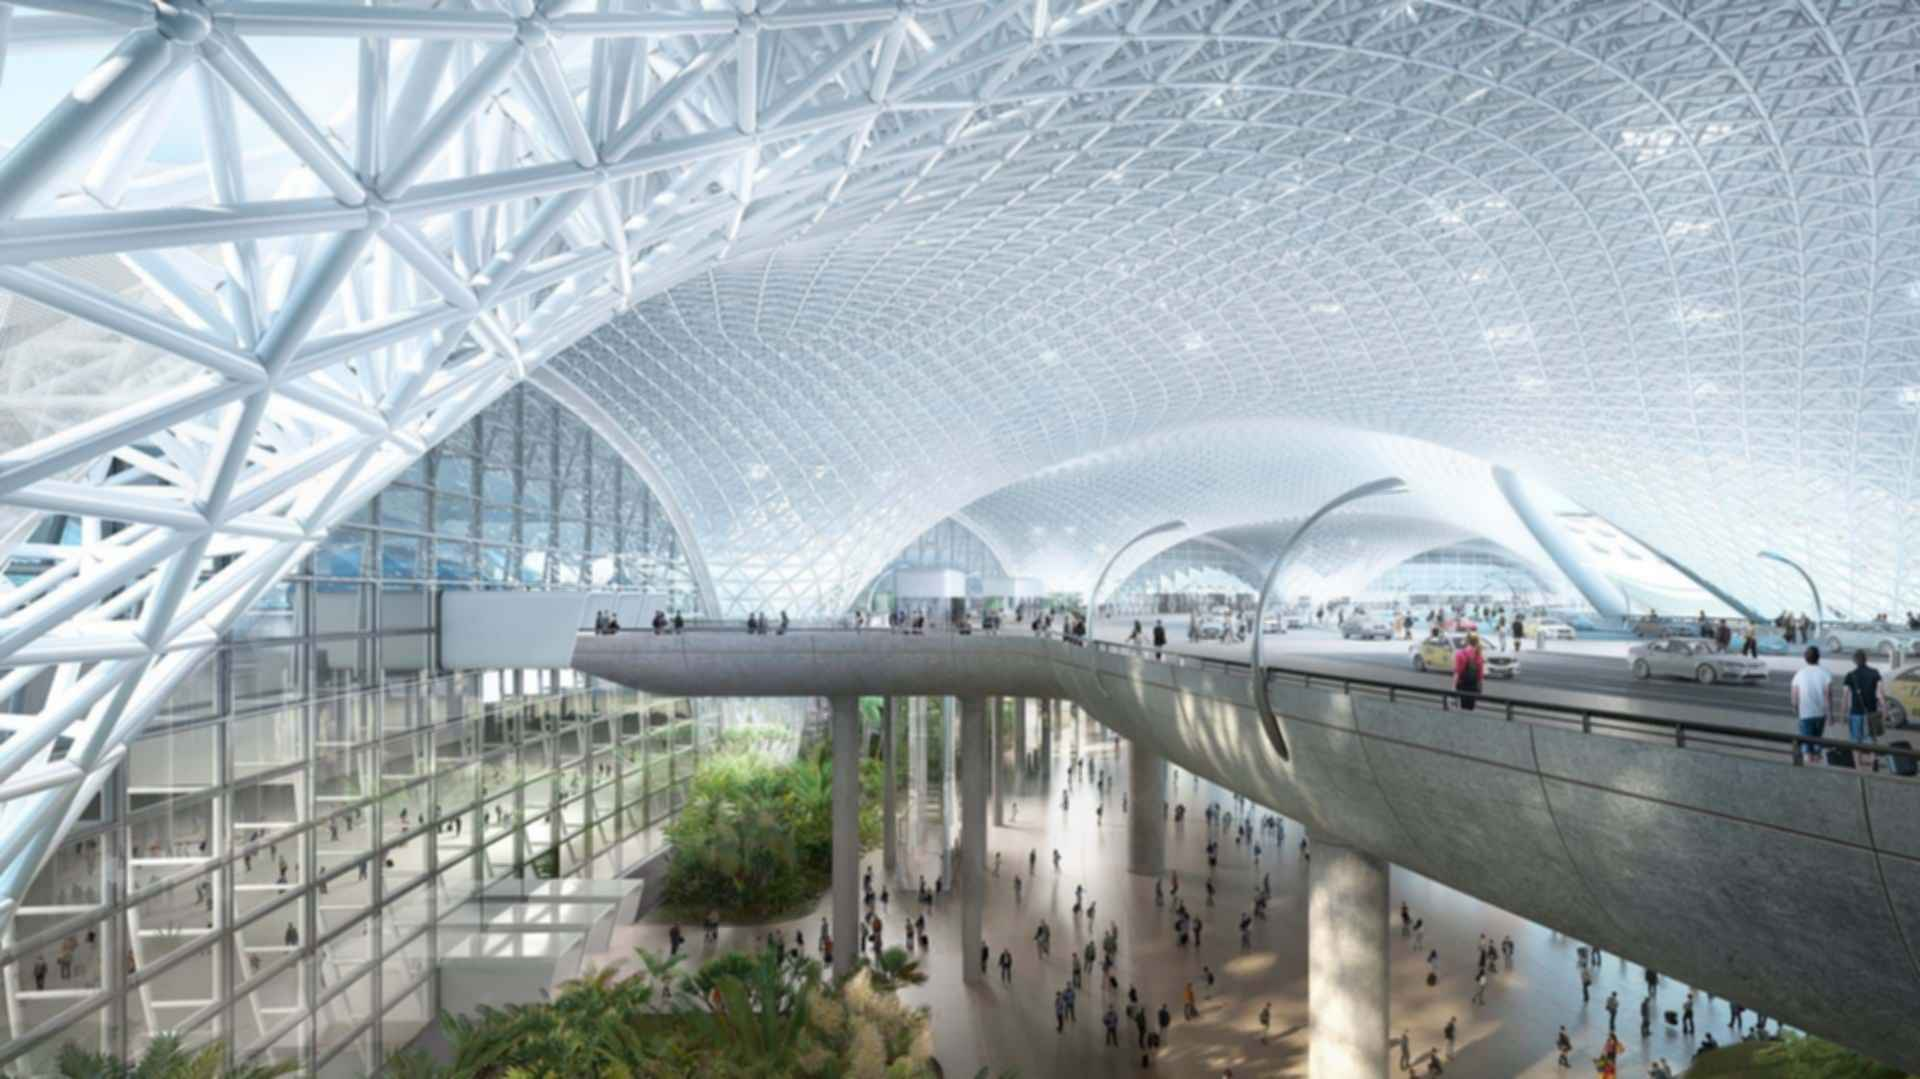 Mexico City Airport - Entrance Hall Concept Design